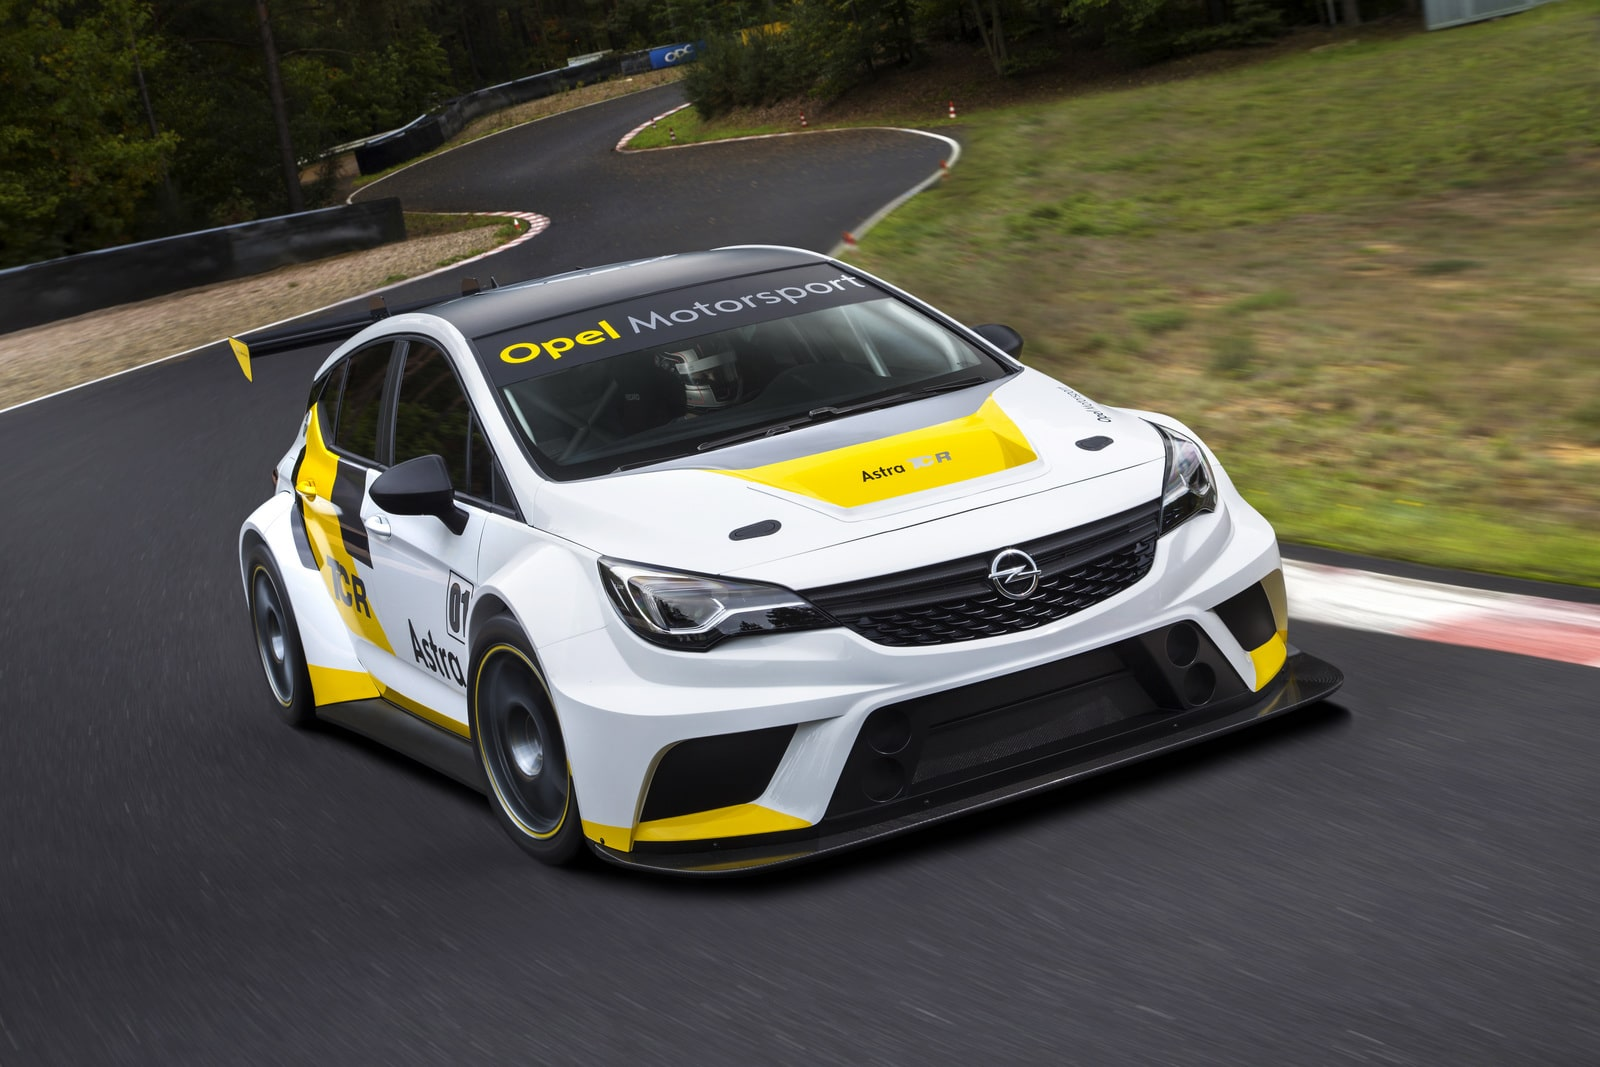 L'Opel Astra enclenche le mode course